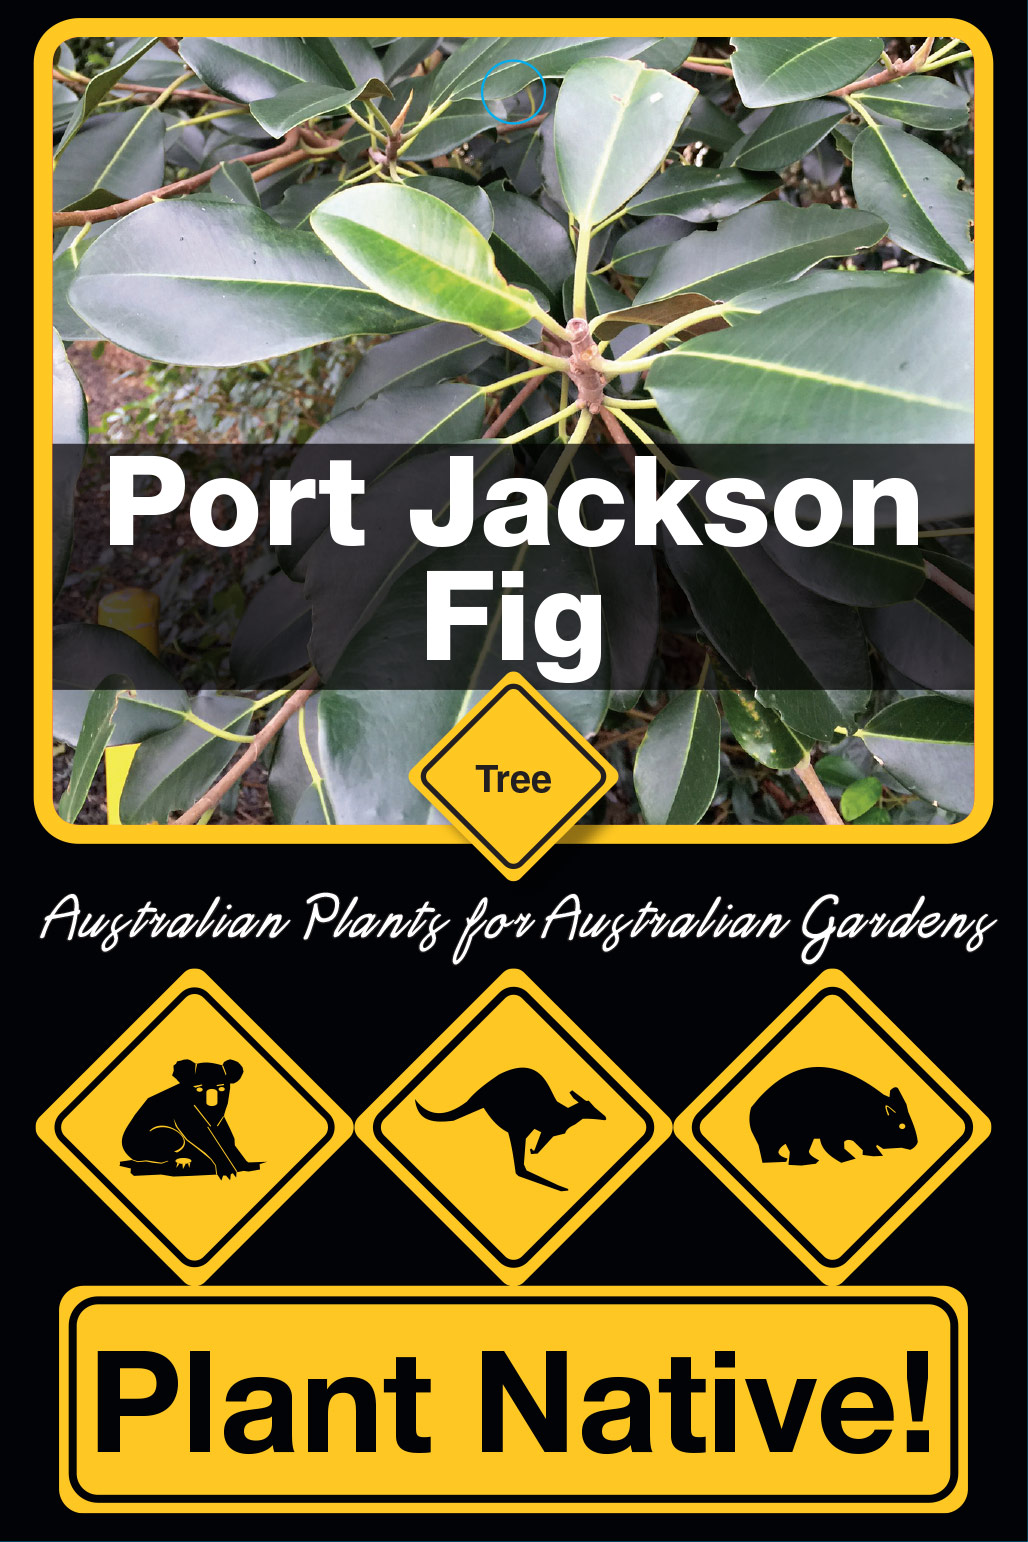 Port Jackson Fig - Plant Native!